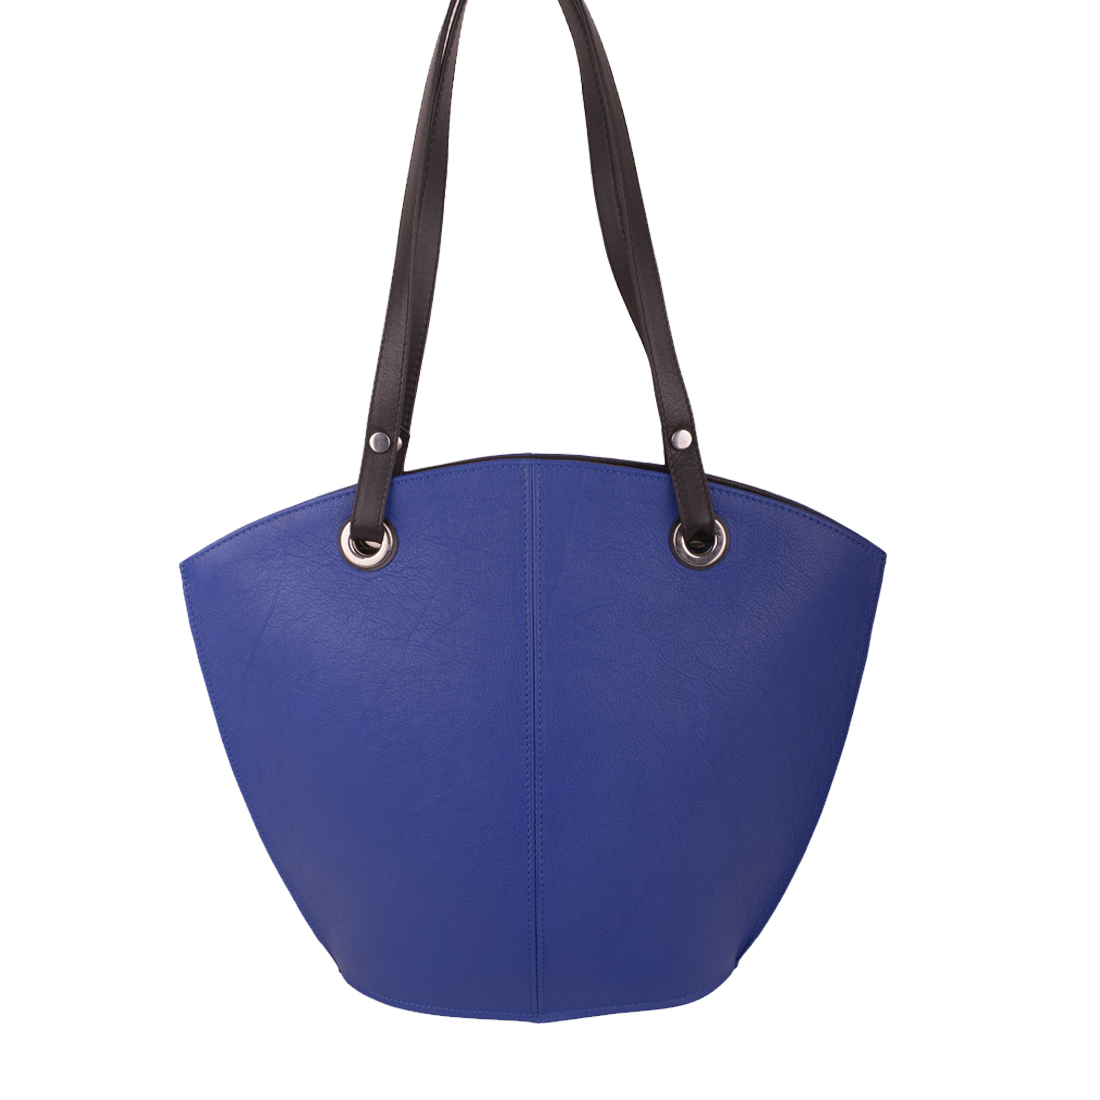 Audrey Blue Black Leather Shoulder Bag